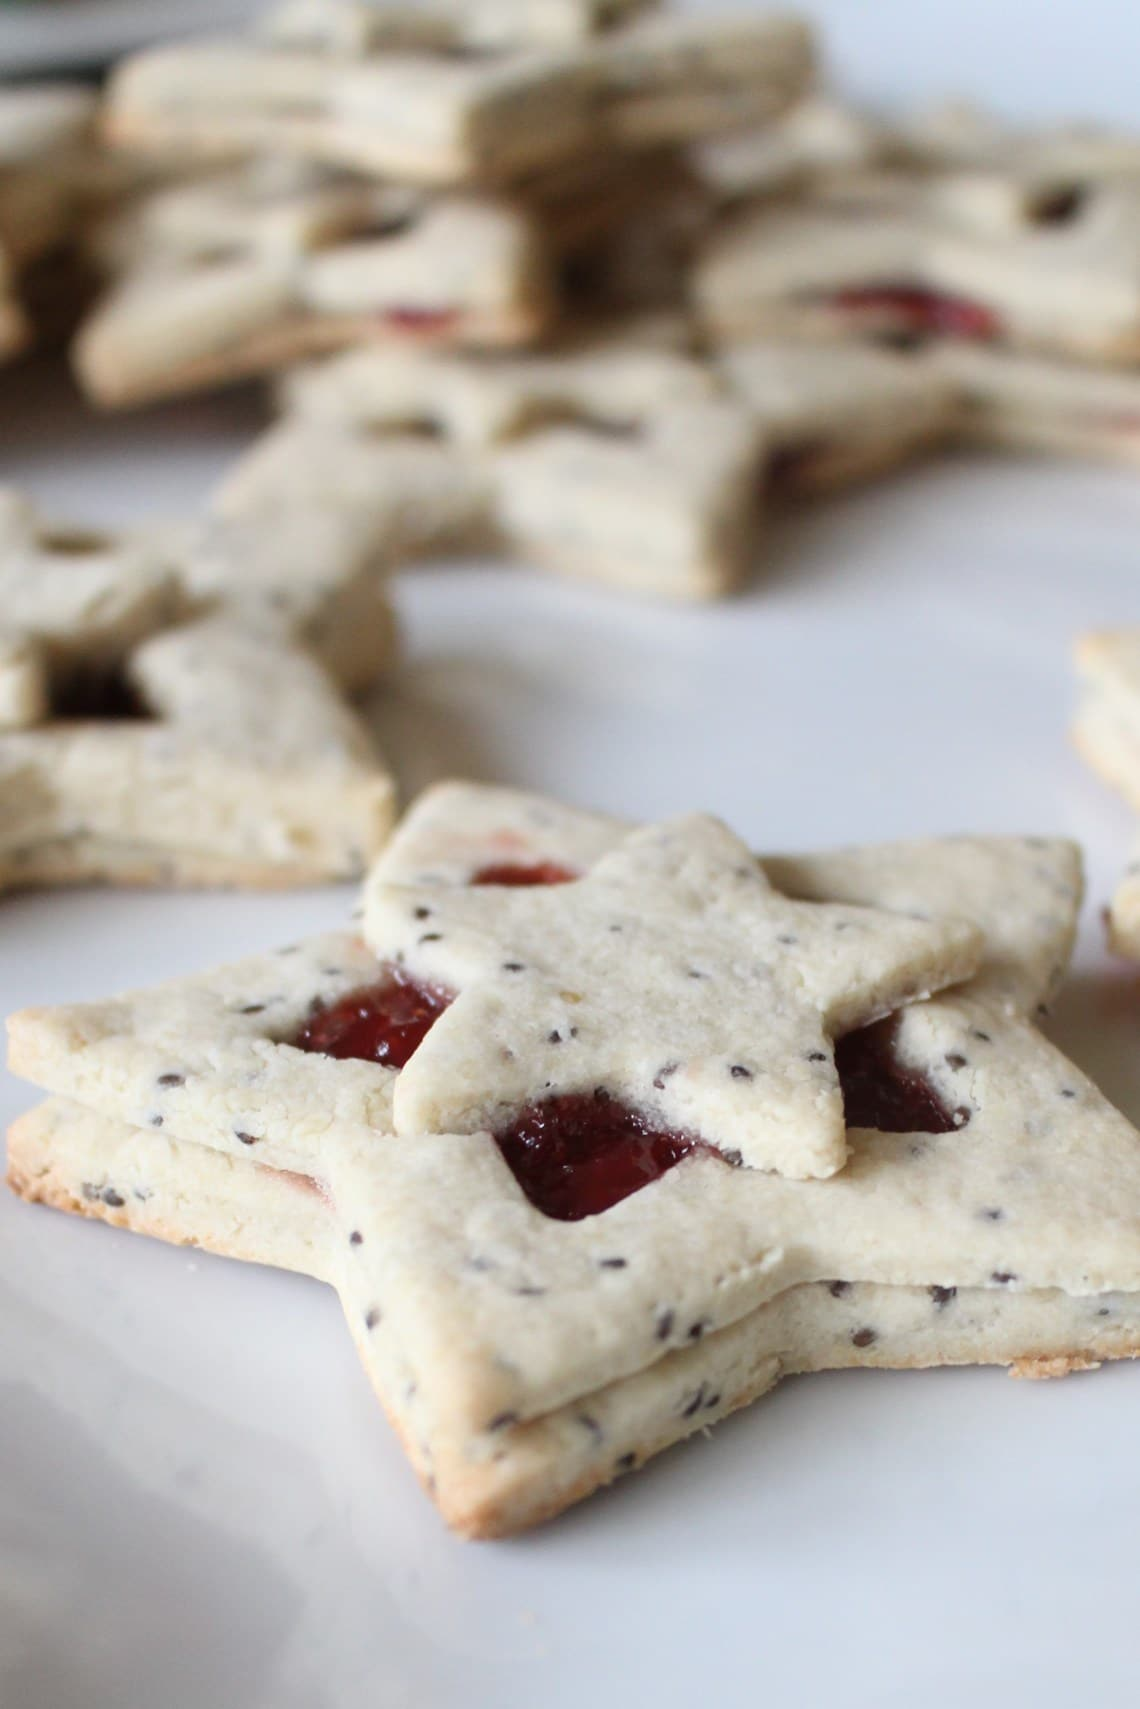 cut out cookies in teh shape of stars with strawberry jelly